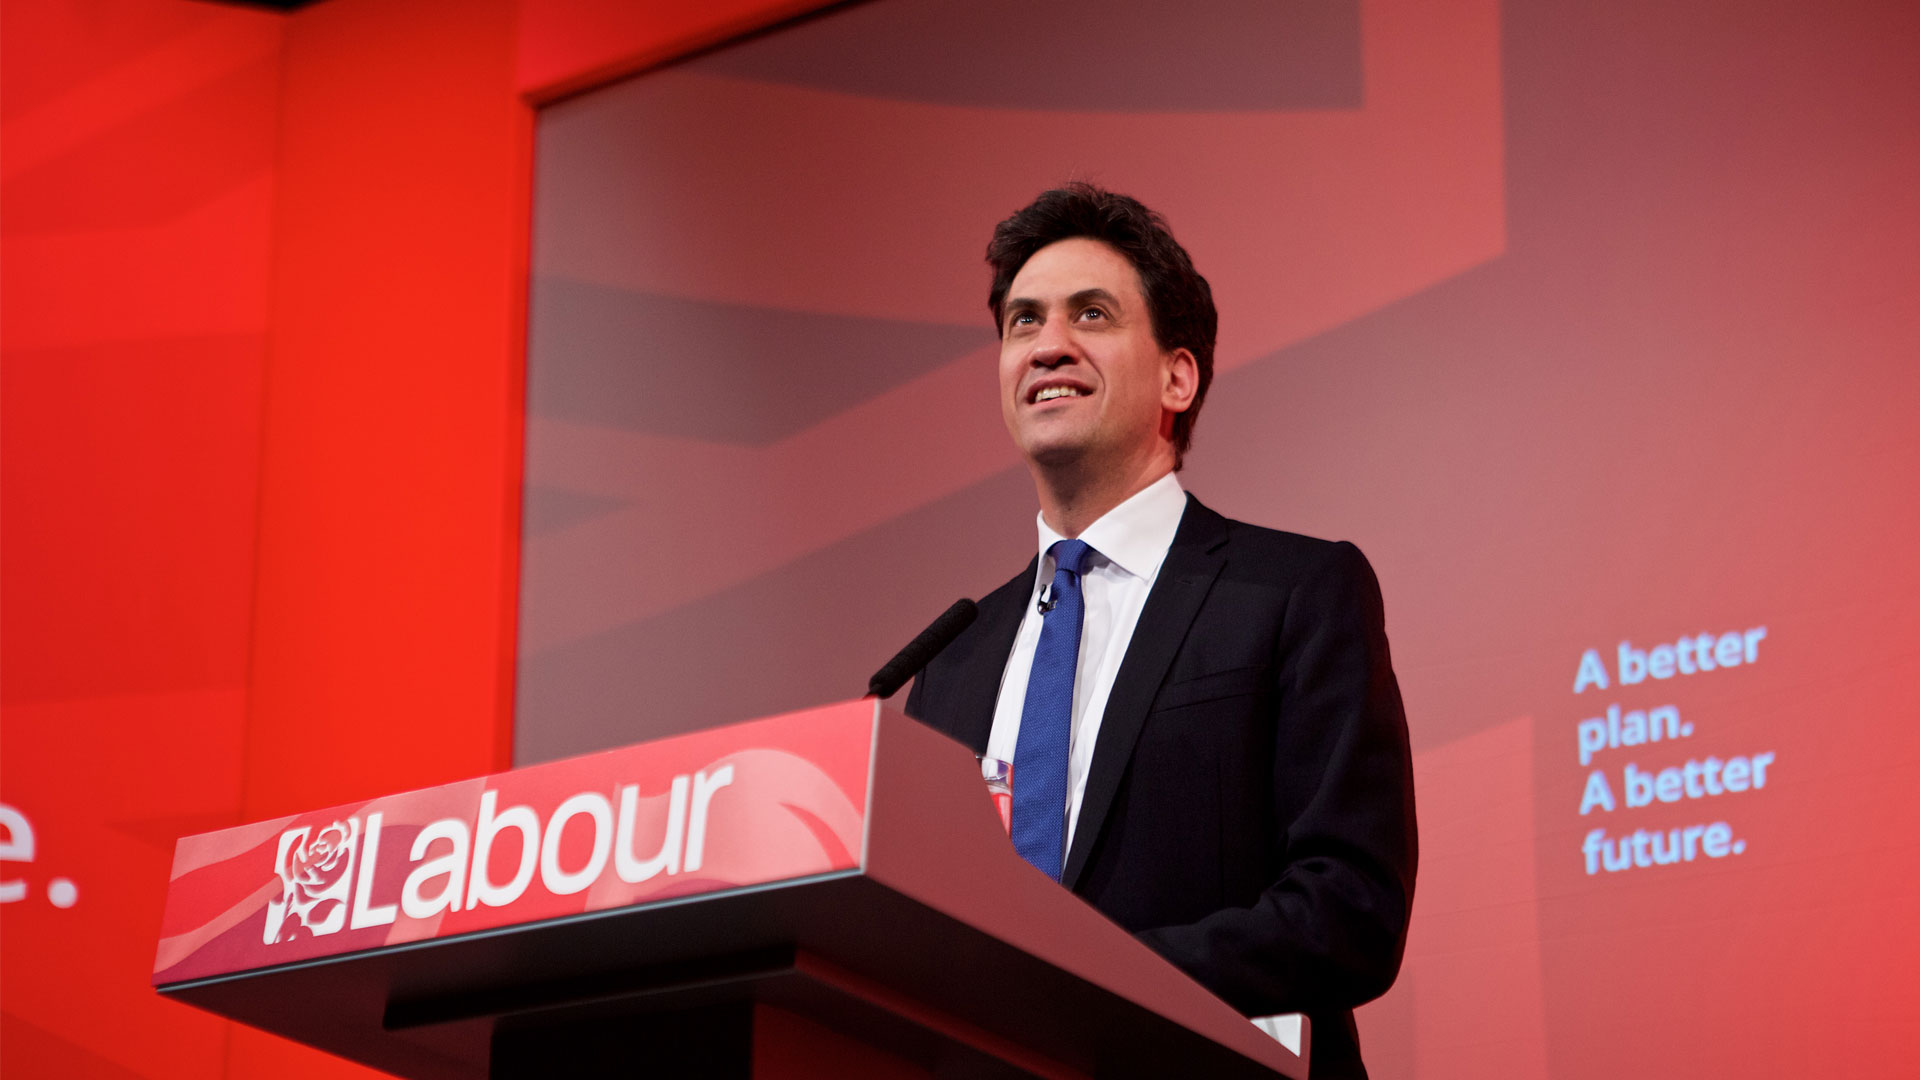 Labour Party Leader of the Opposition Ed Miliband giving a speech during the Labour conference 2015.